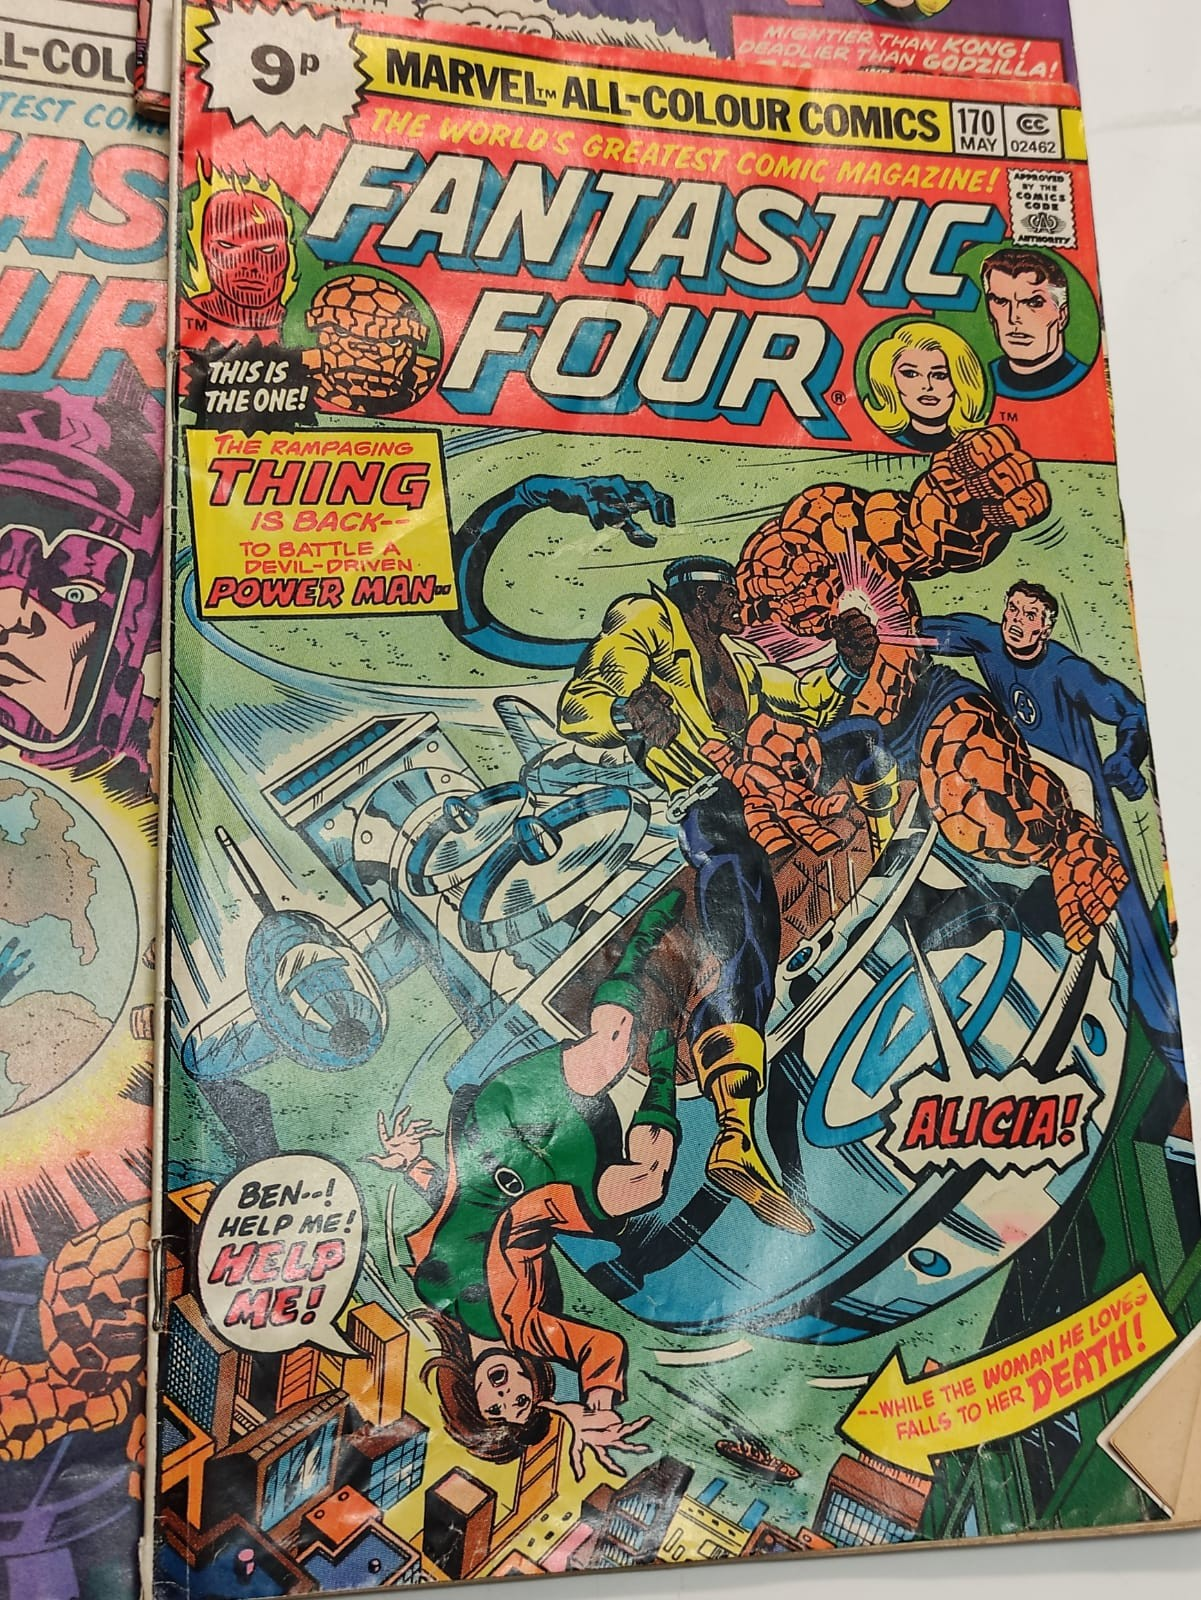 30x Marvel Fantastic four mid 1970s editions. Used, in good condition. - Image 14 of 17